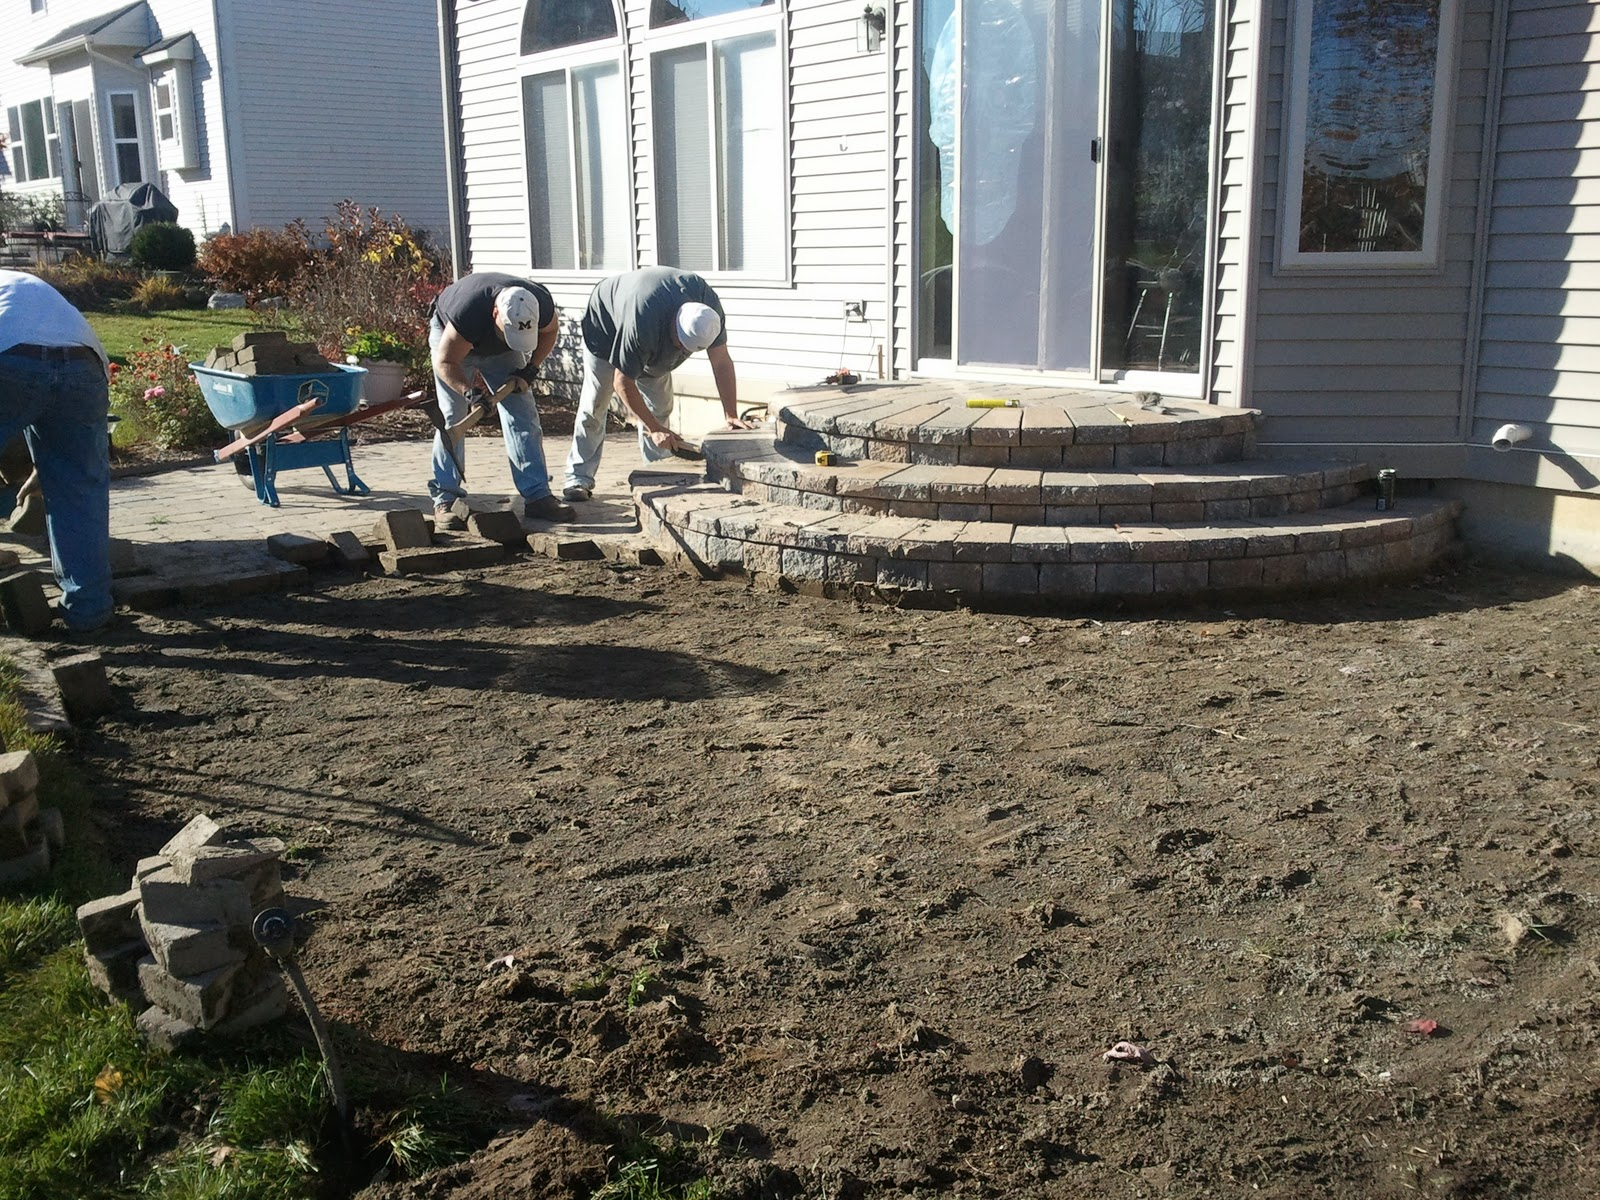 ... This Brick Paver Repair And Restoration With A Complete Re Installation  Of The Paving Stone Patio. Due To The Severe Pitch Back To The Home  Foundation, ...